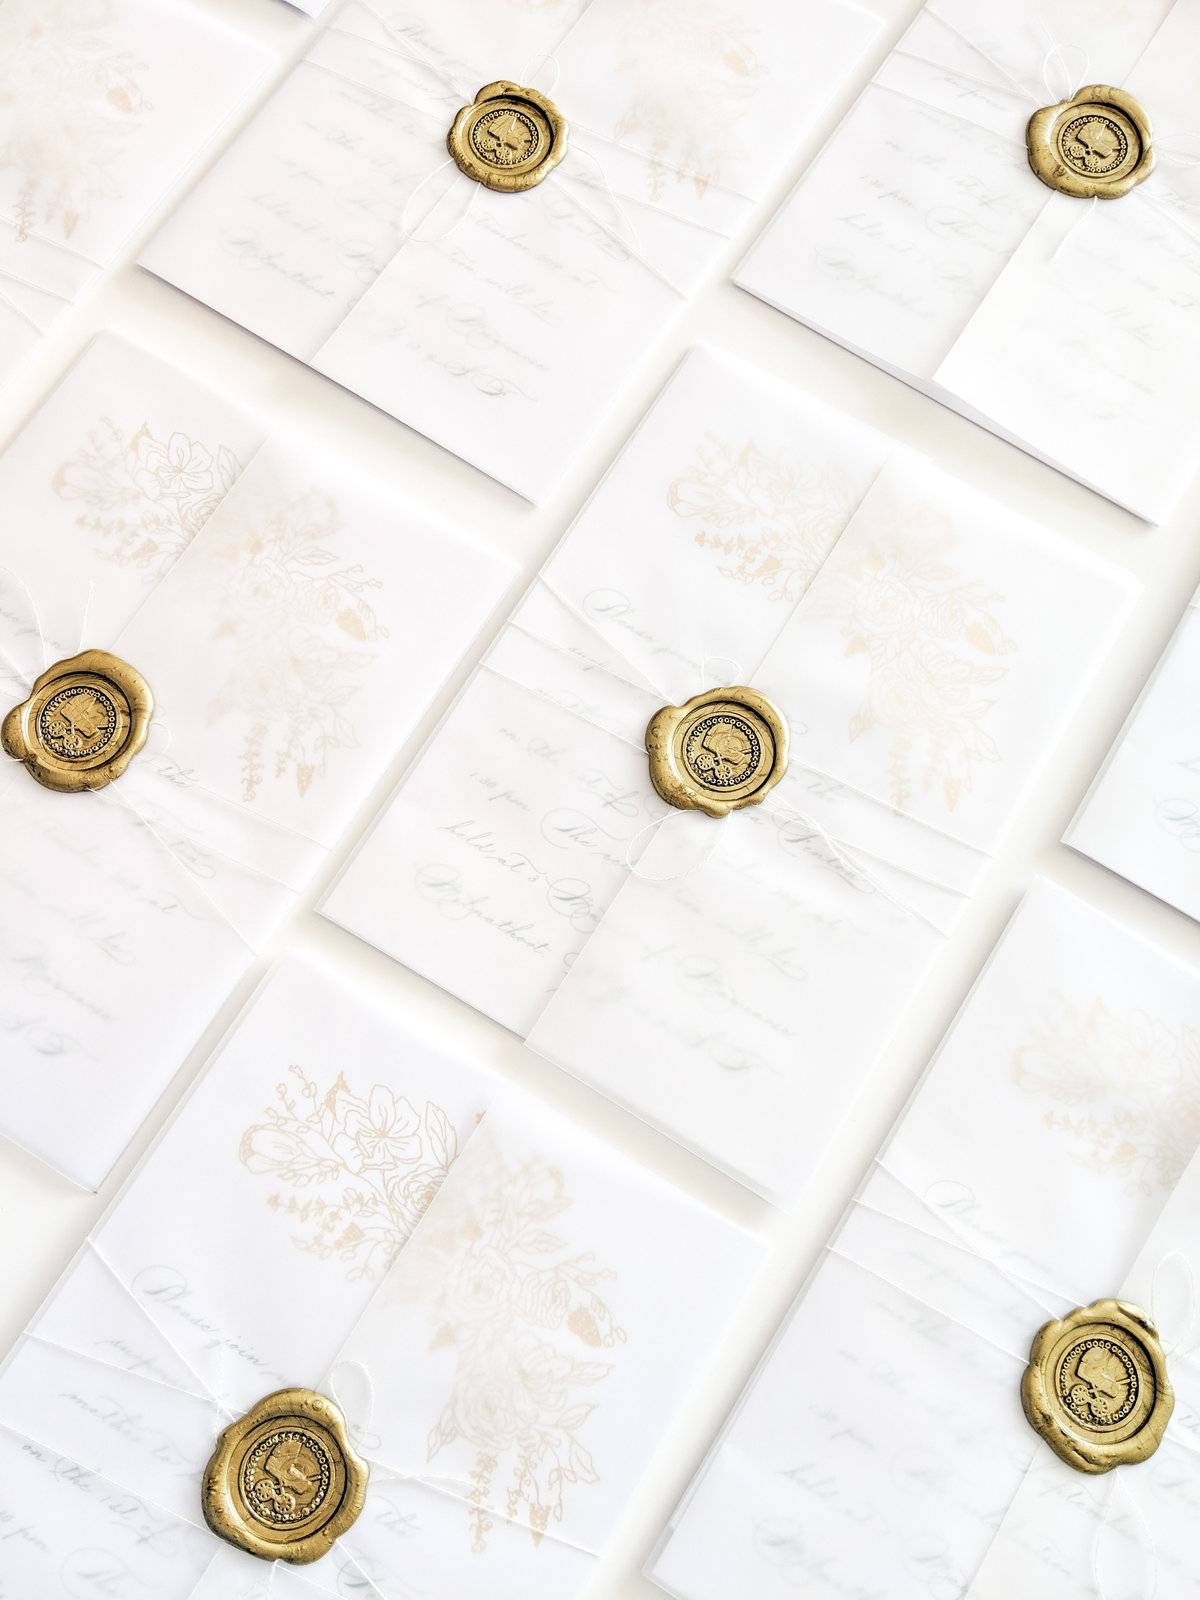 Wax Seal and Vellum Invitations | Jenni Liandu Calligraphy